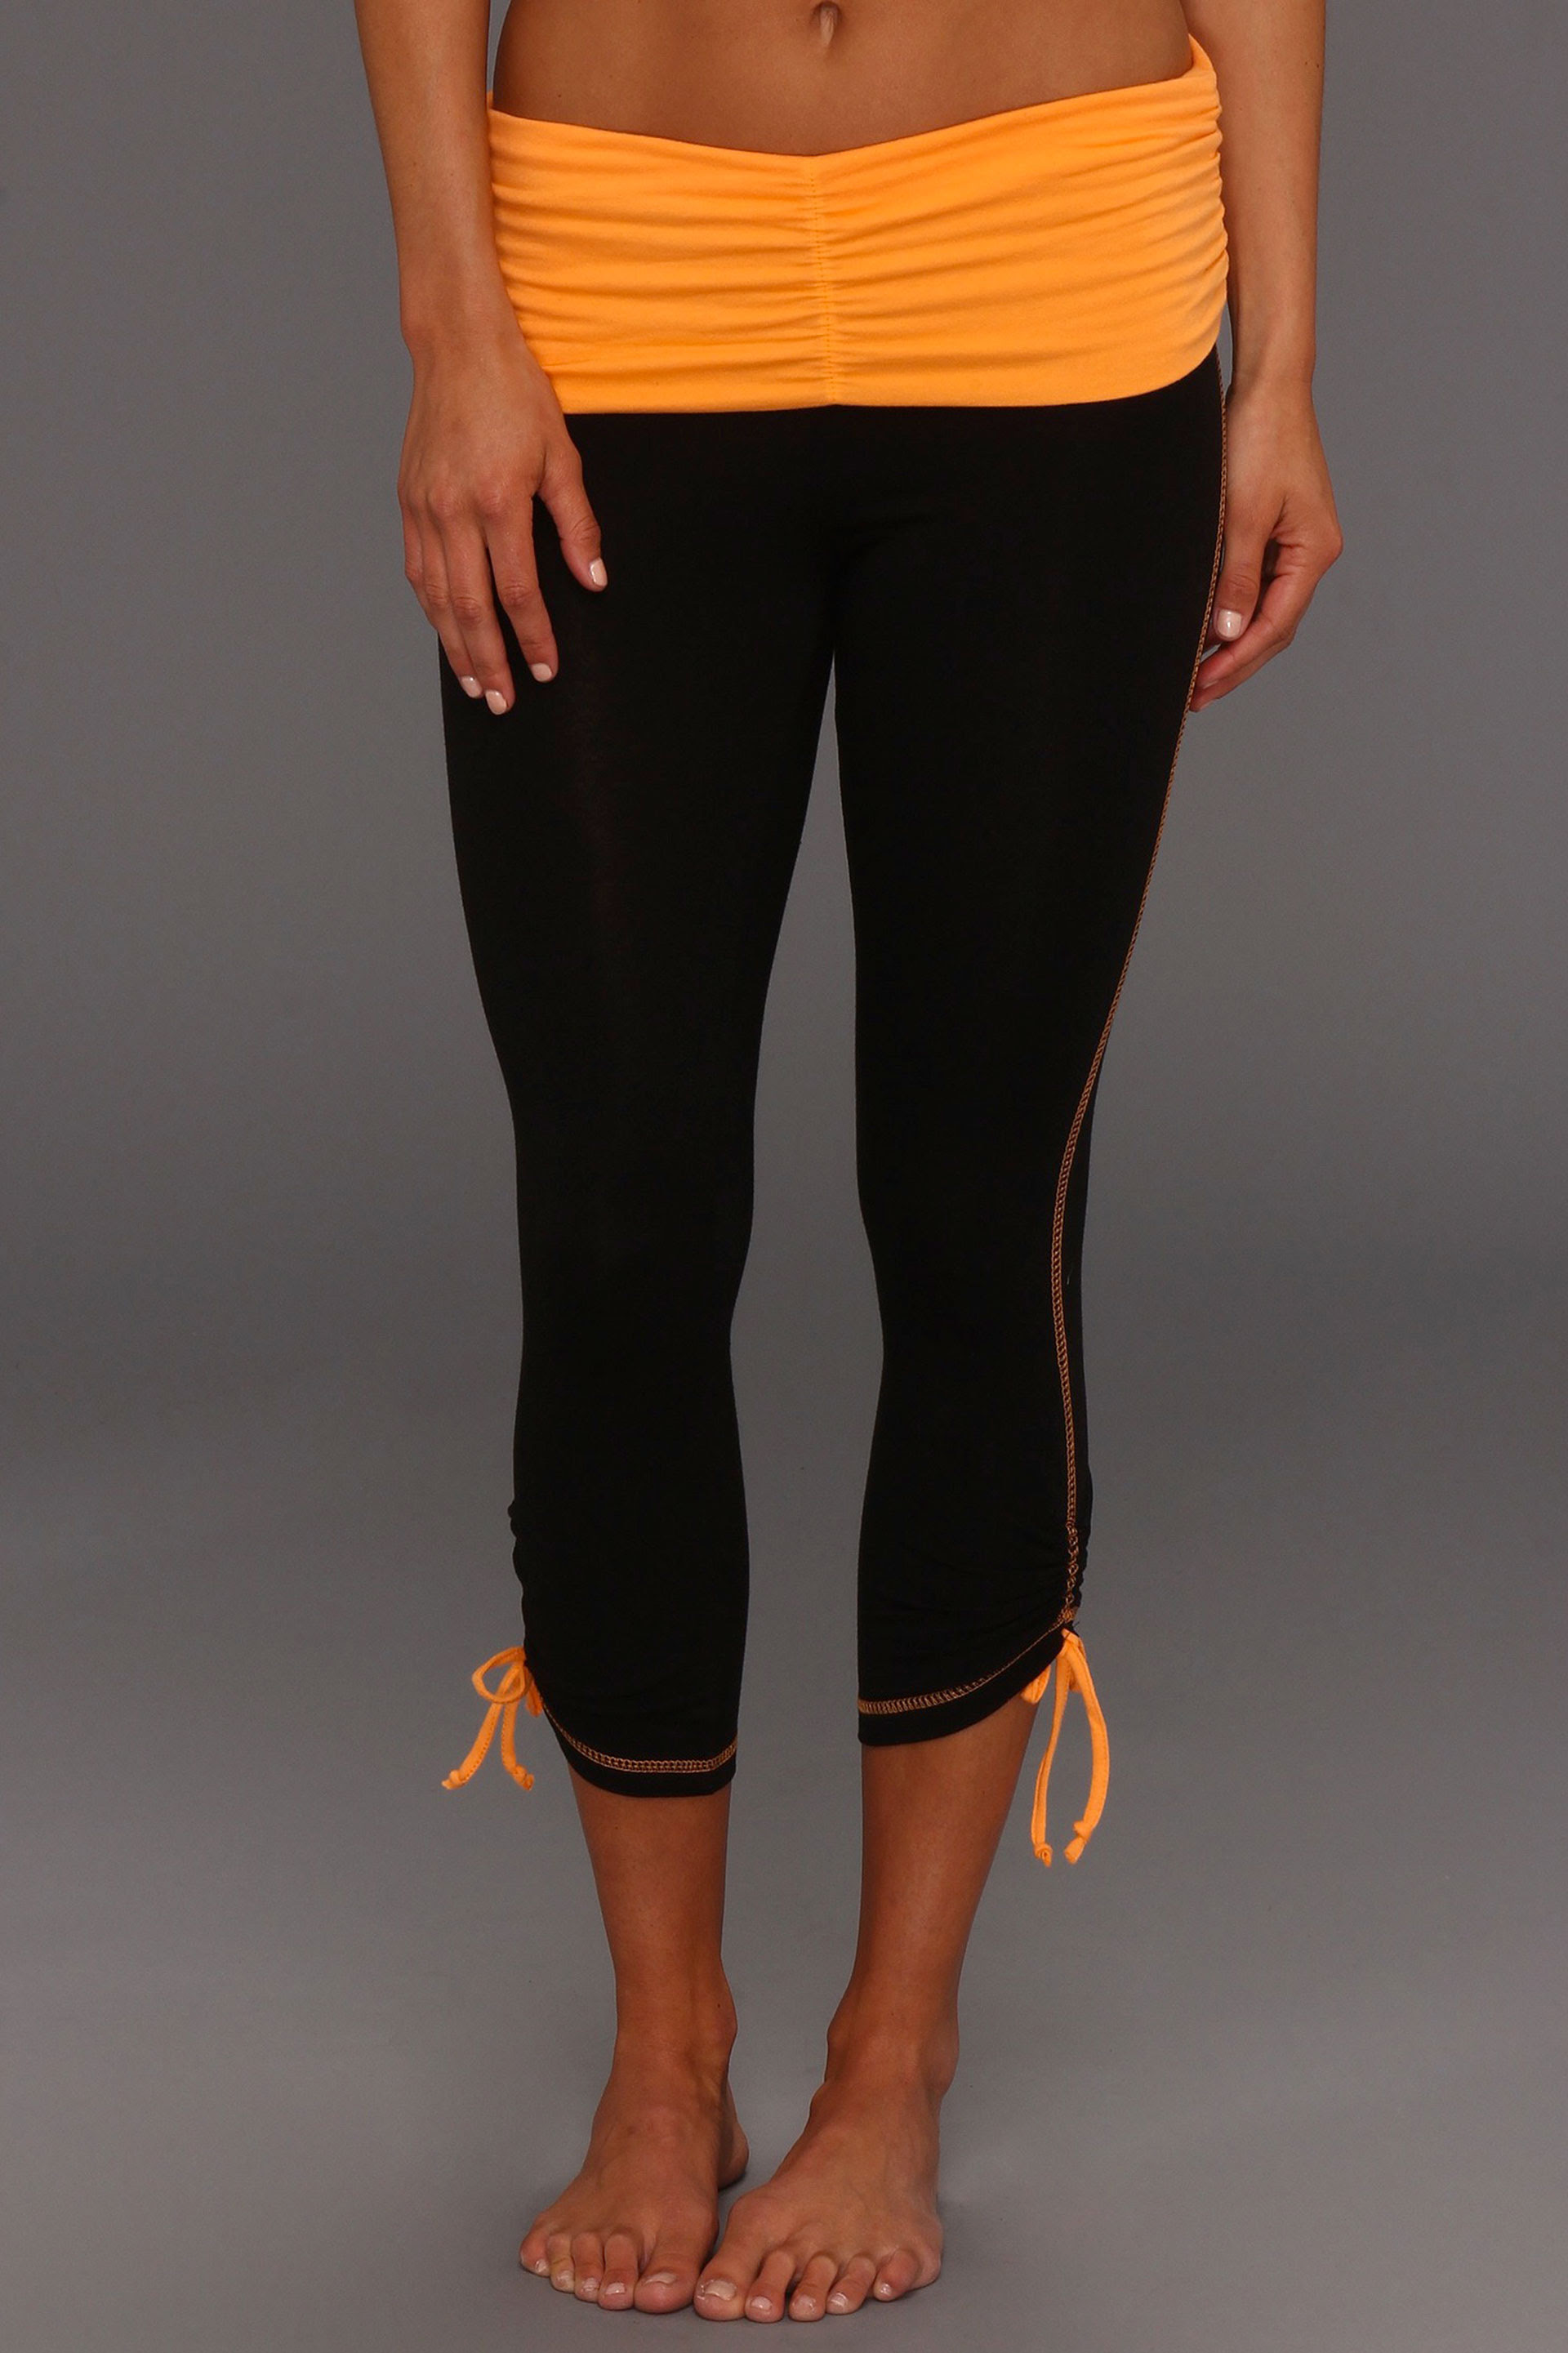 comfy workout clothes for women  yoga clothes for women